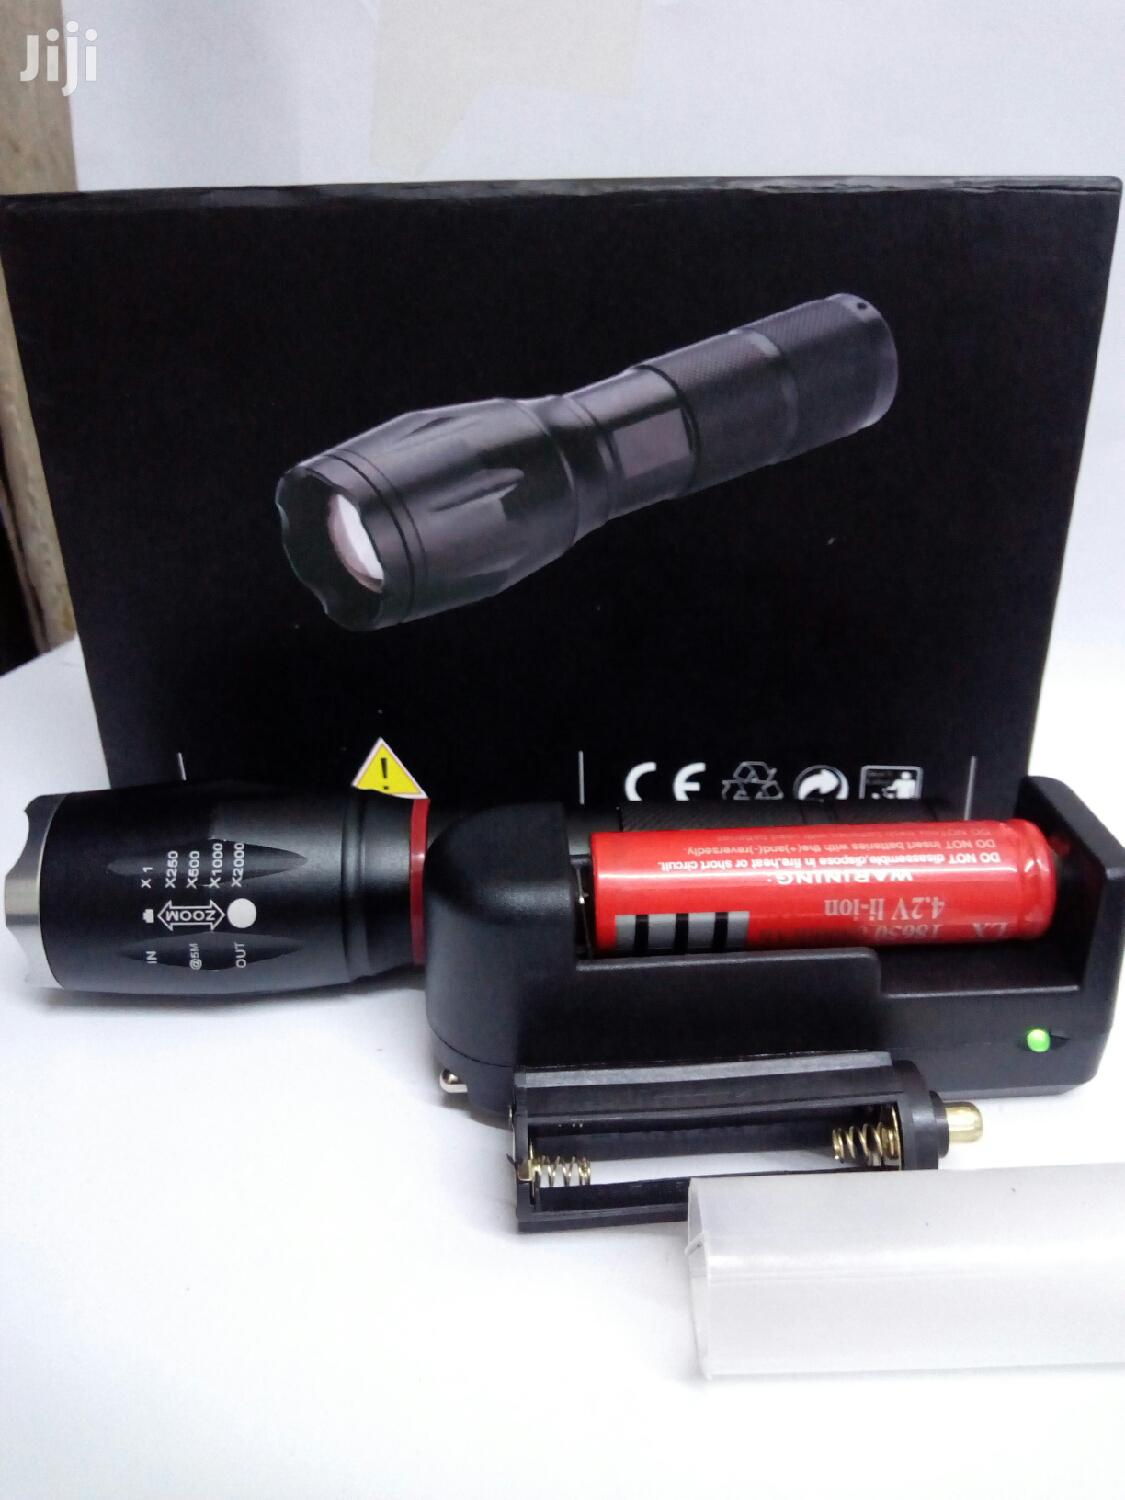 Zoomable Torch With Rechargeable Battery And SOS | Camping Gear for sale in Nairobi Central, Nairobi, Kenya